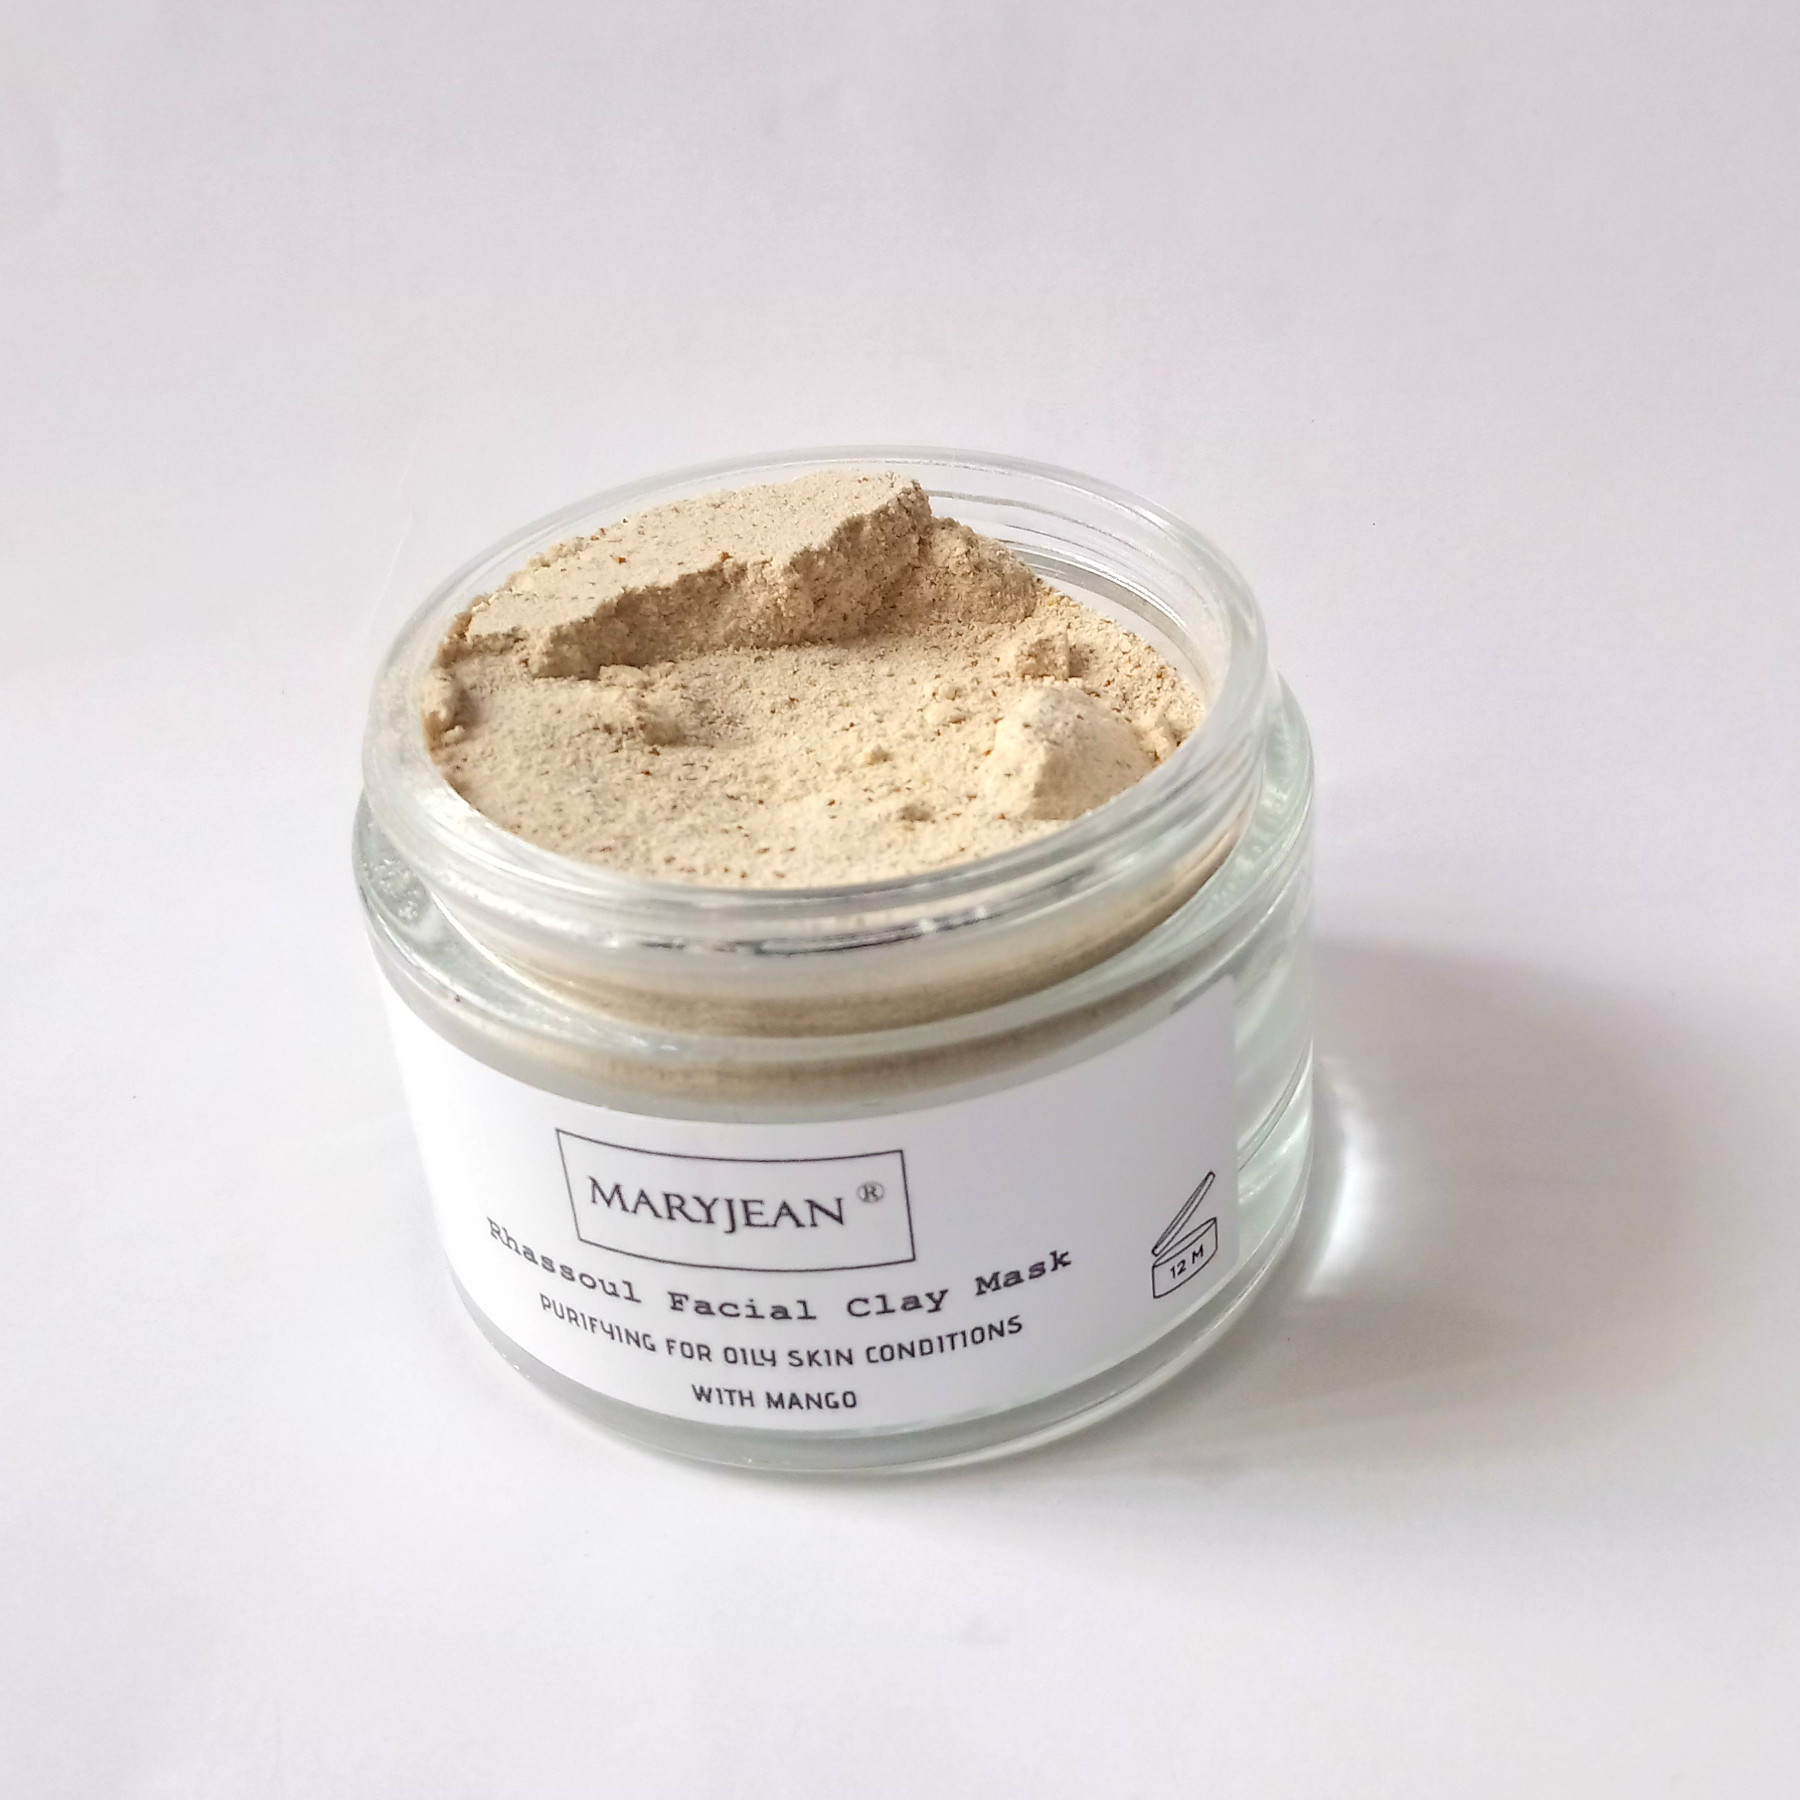 Gently exfoliation from this clay with Apricot seed powder removes damaged skin cells